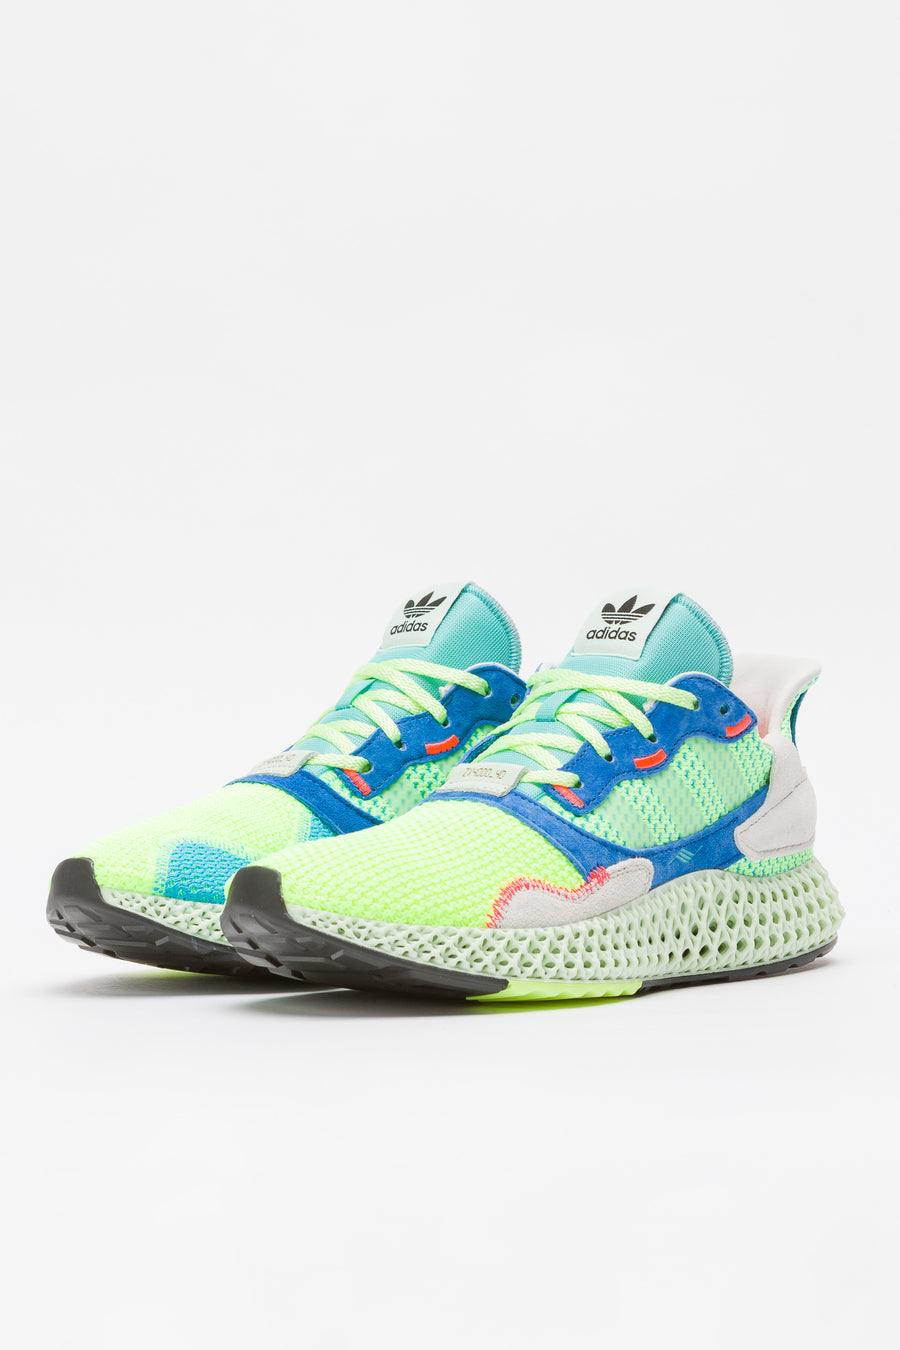 adidas ZX 4000 4D in Yellow/Green/Mint - Notre